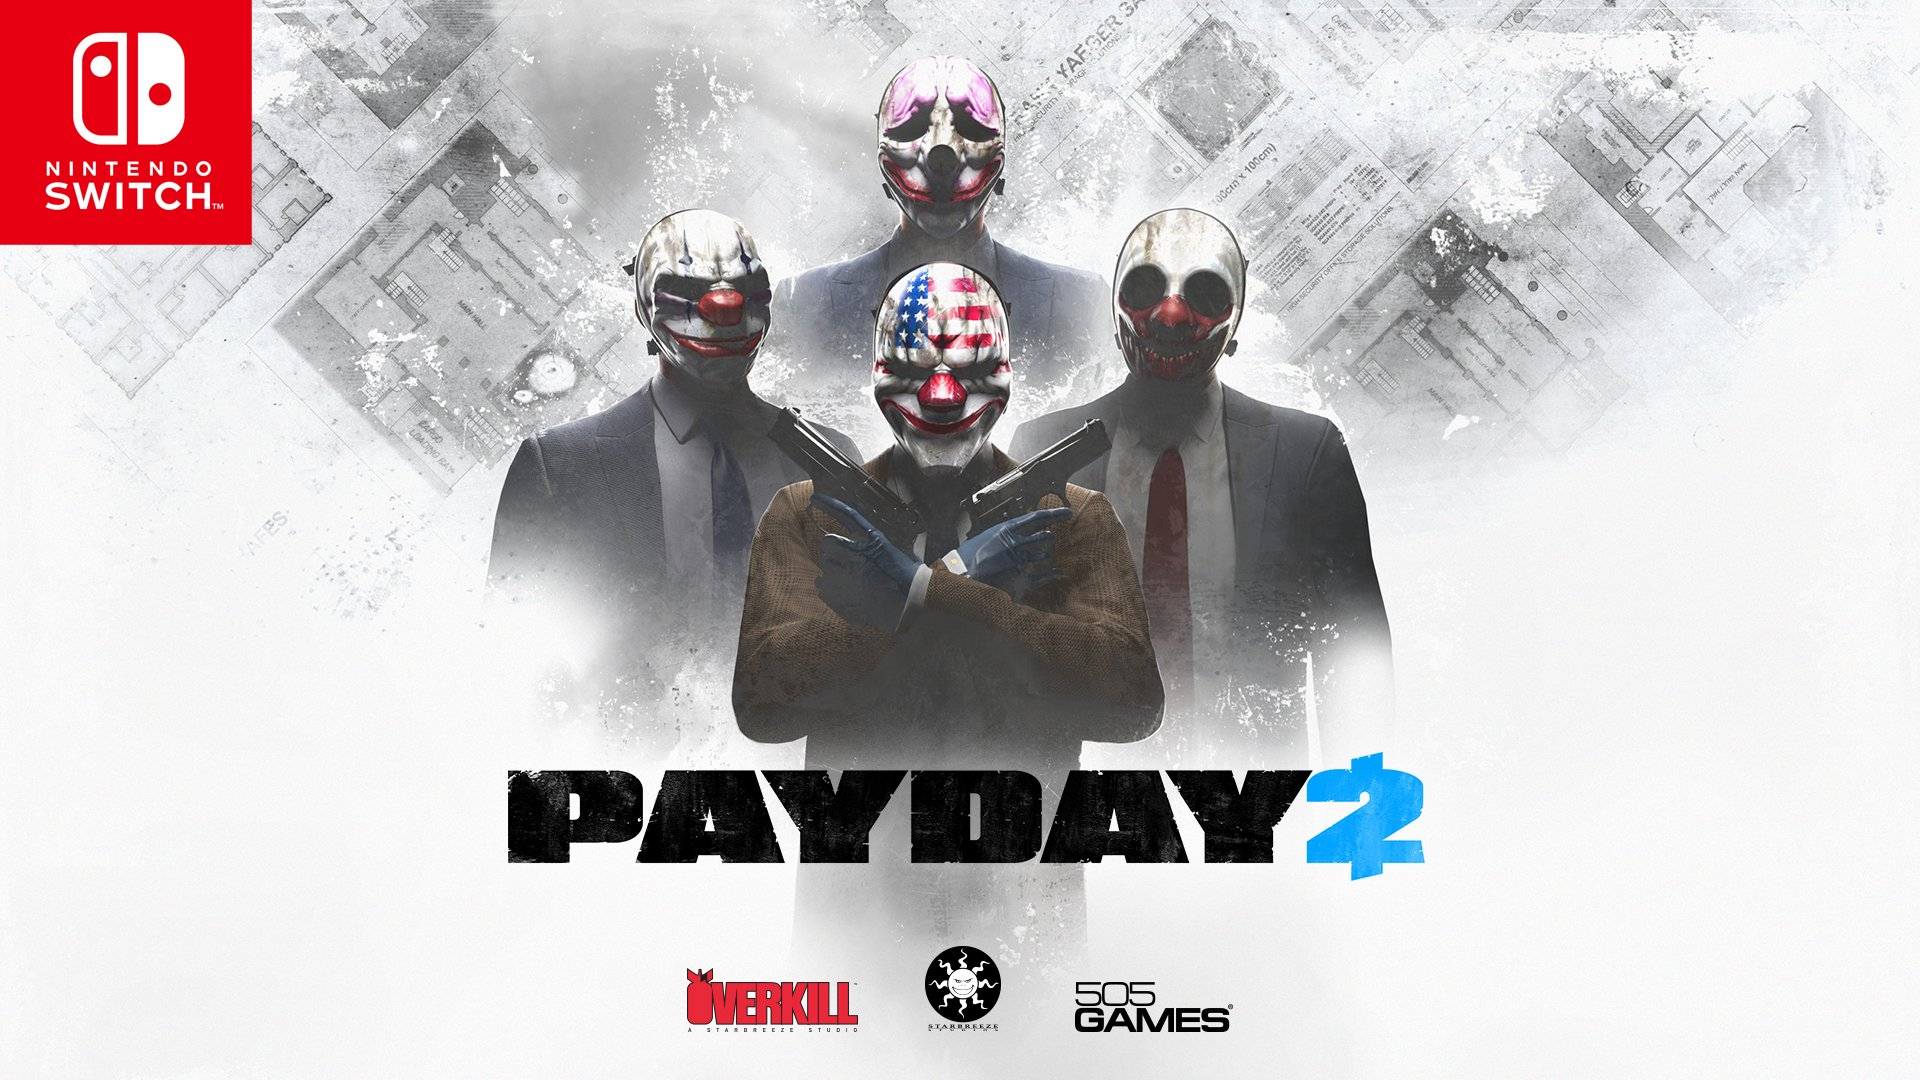 Take your heisting experience on the go when the 4-player co-op shooter #PAYDAY2 comes to #NintendoSwitch on 2/27. https://t.co/3DebBWJi2z